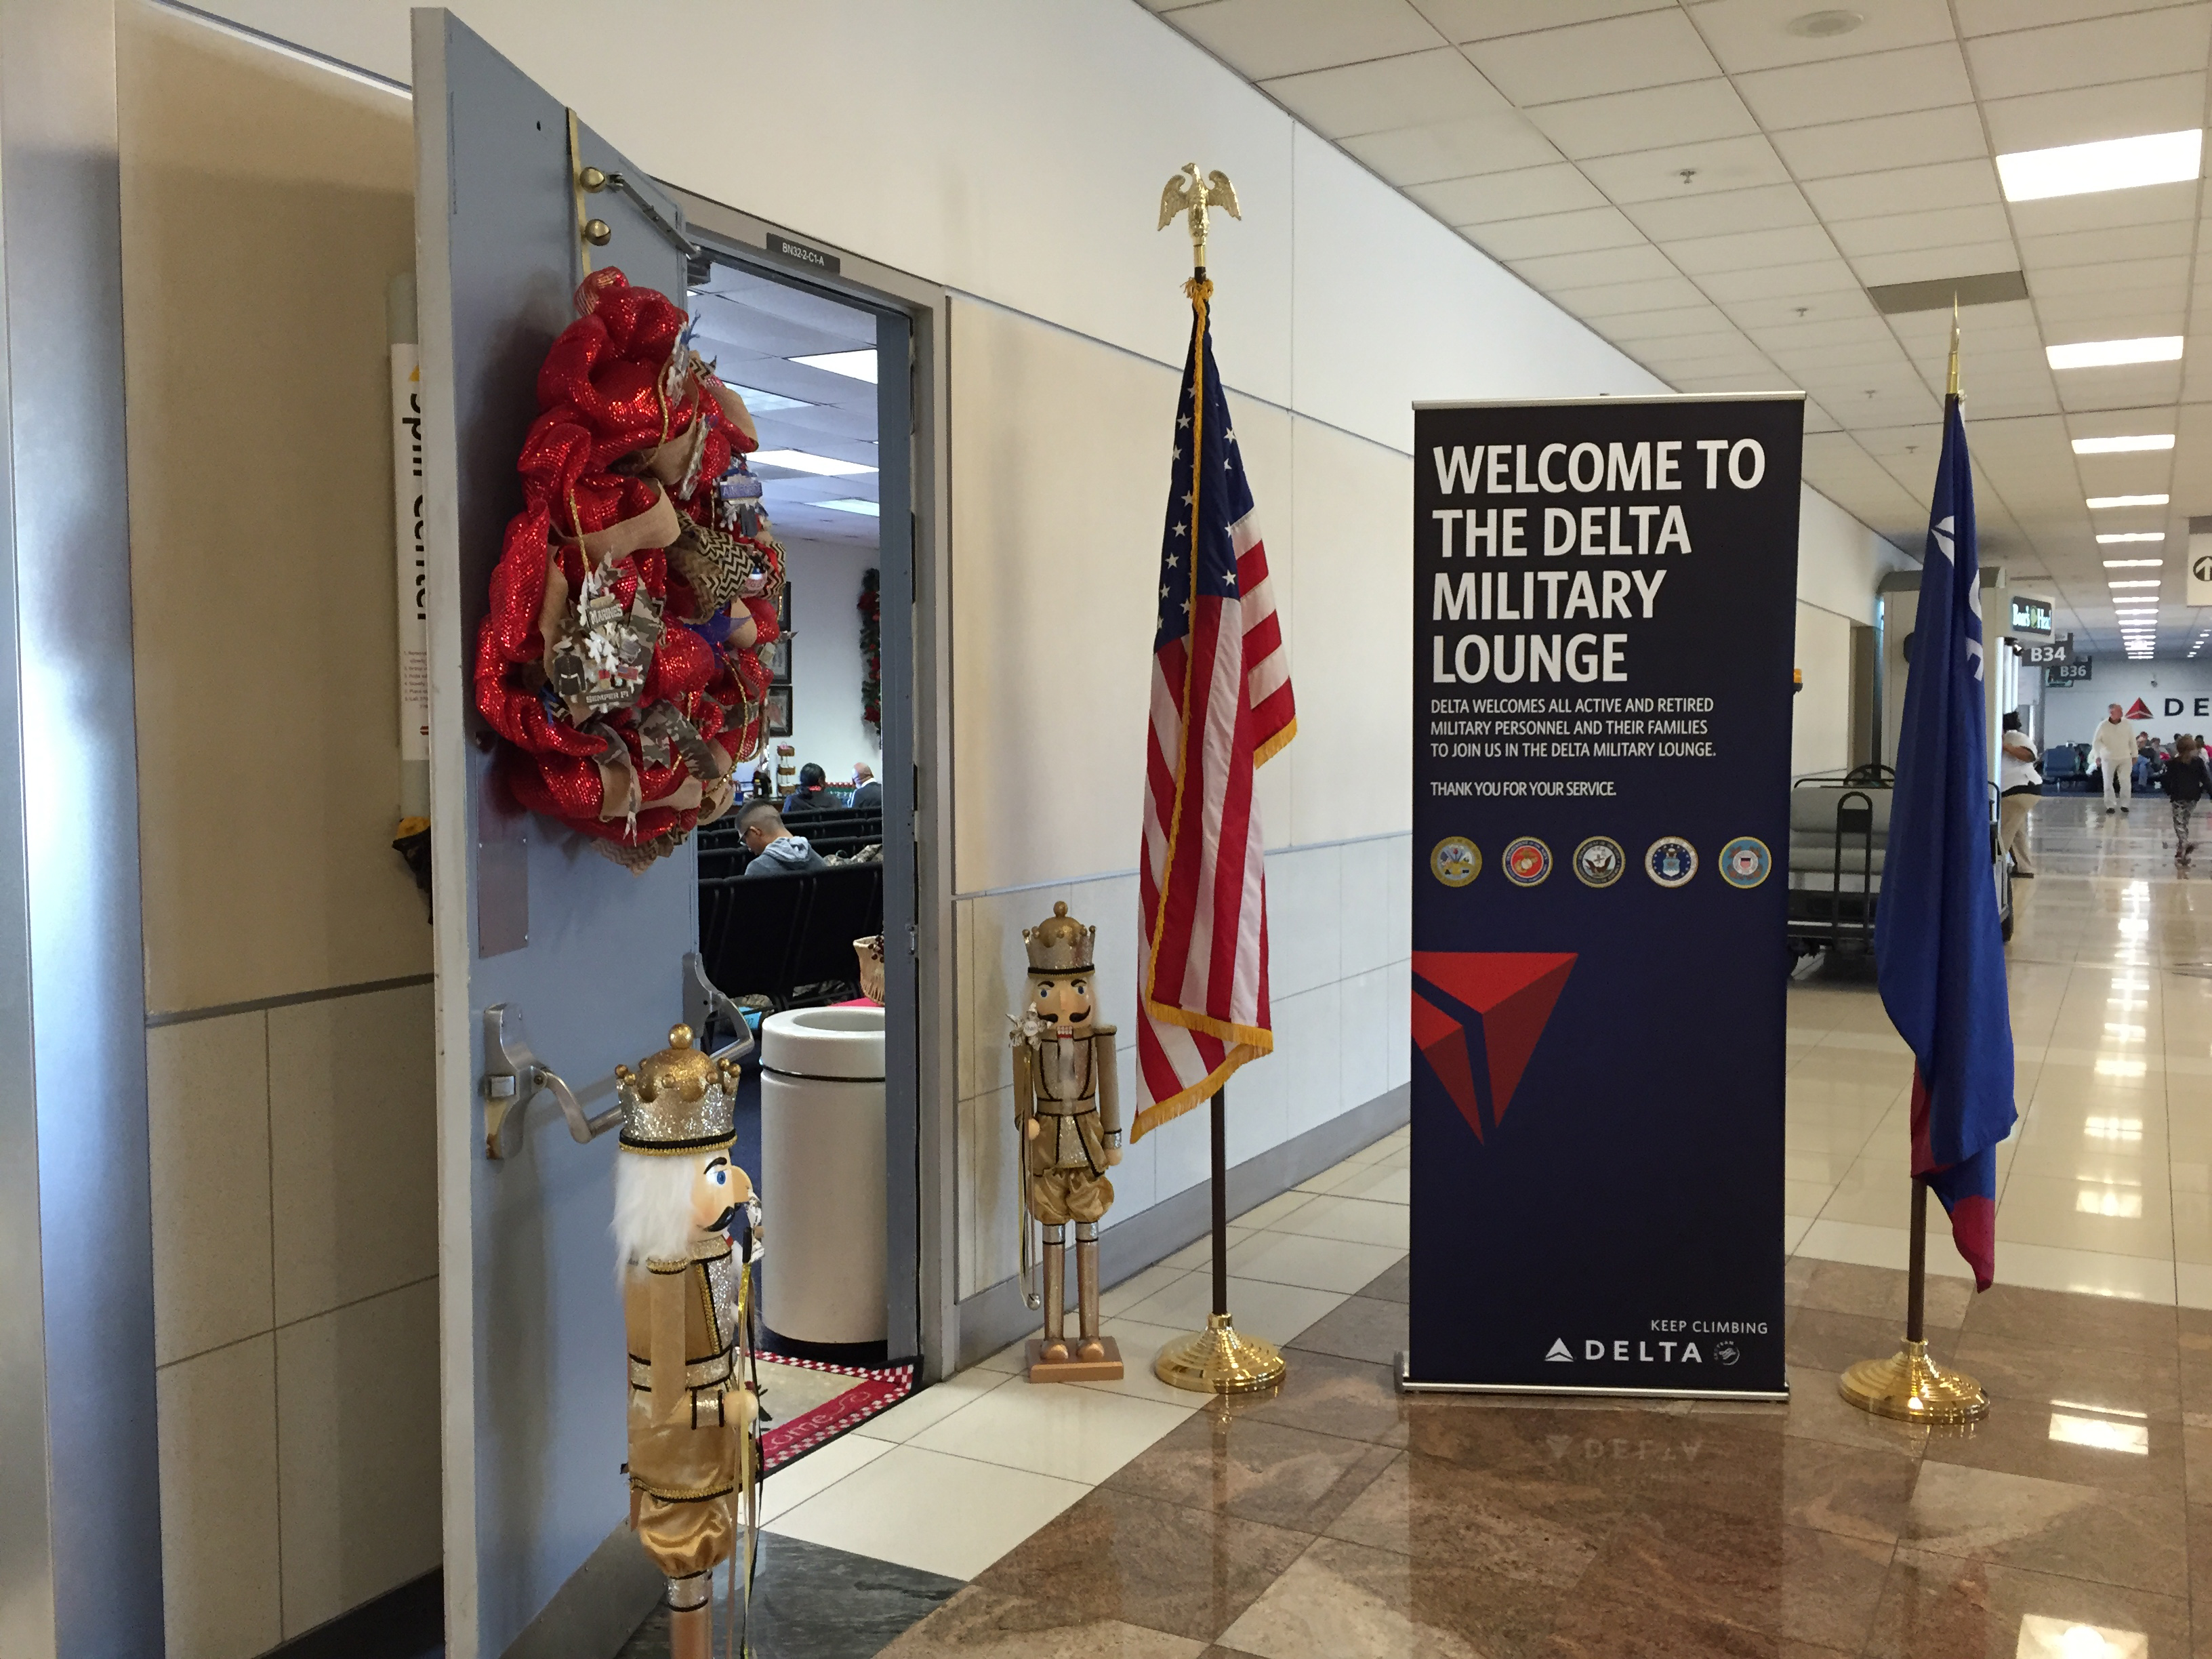 Delta military lounge entrance